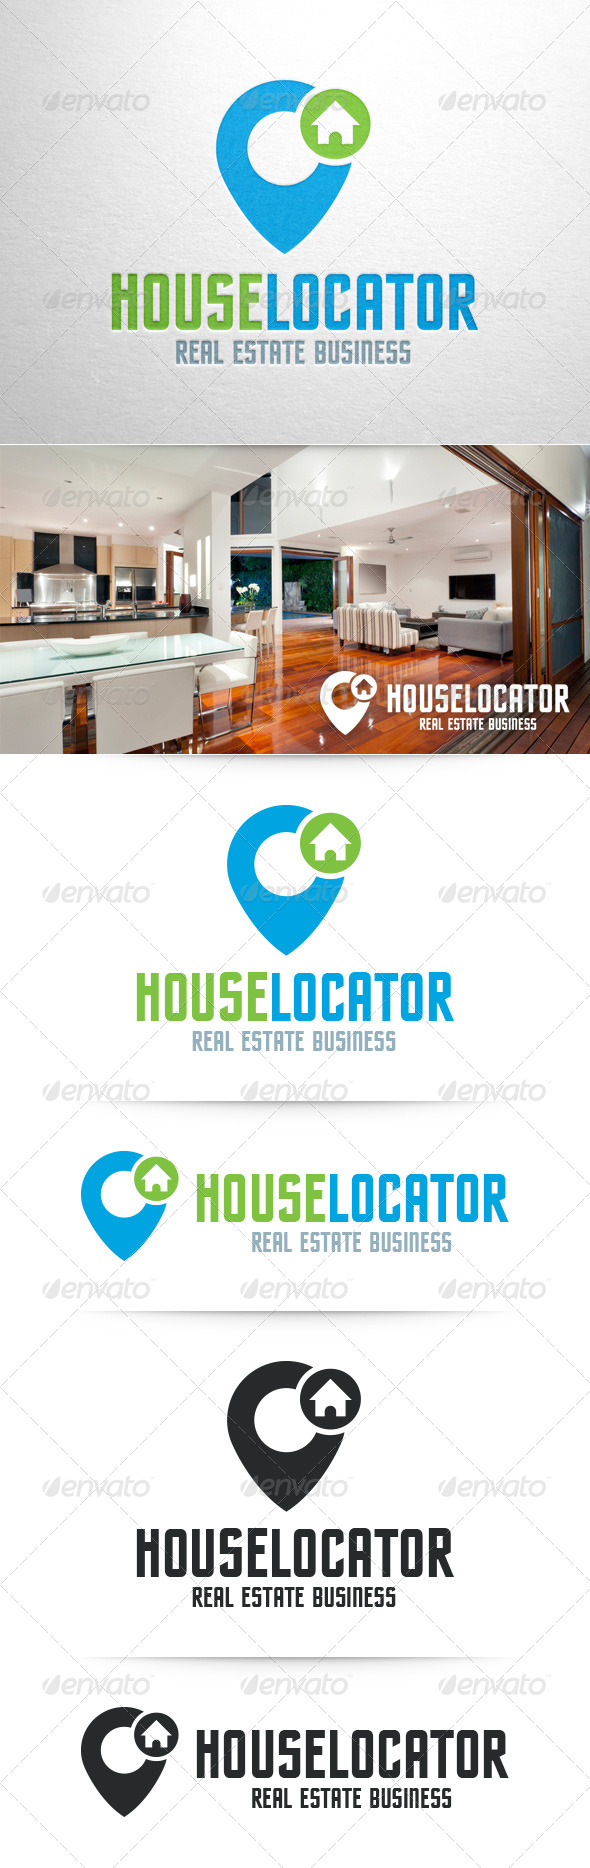 GraphicRiver House Locator Logo Template 8357534